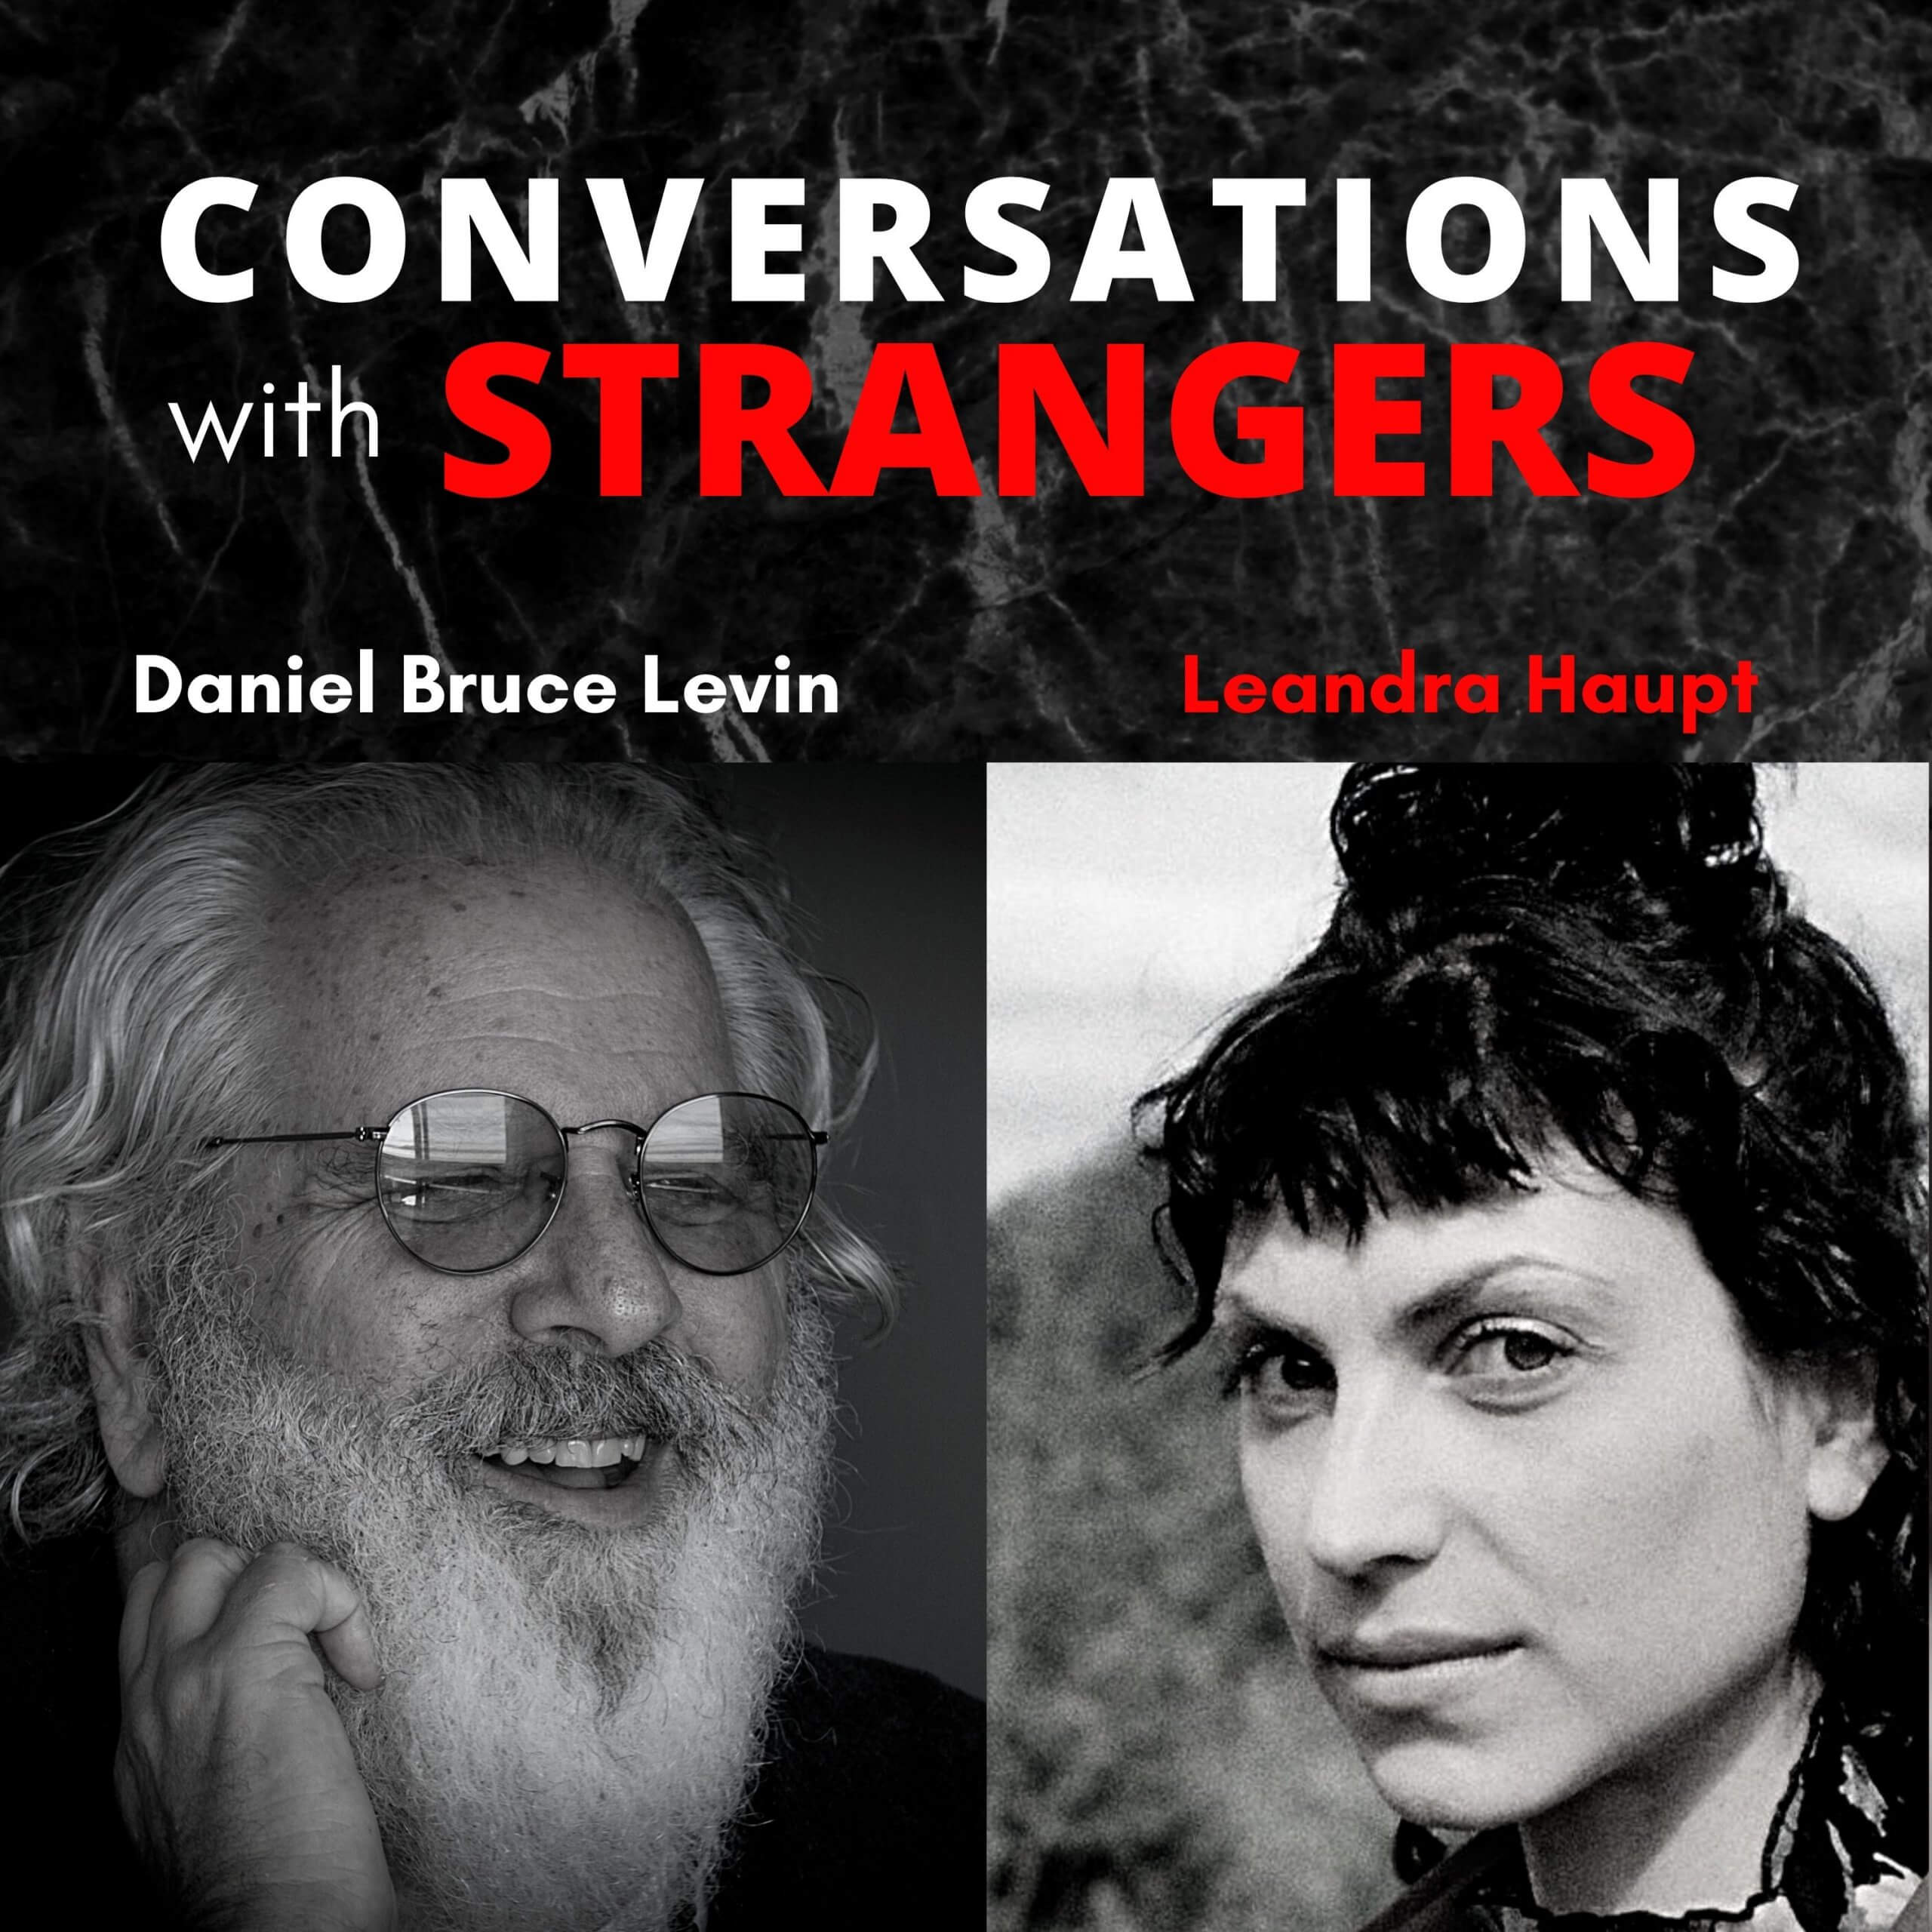 Conversations with Strangers feat. Leandra Haupt